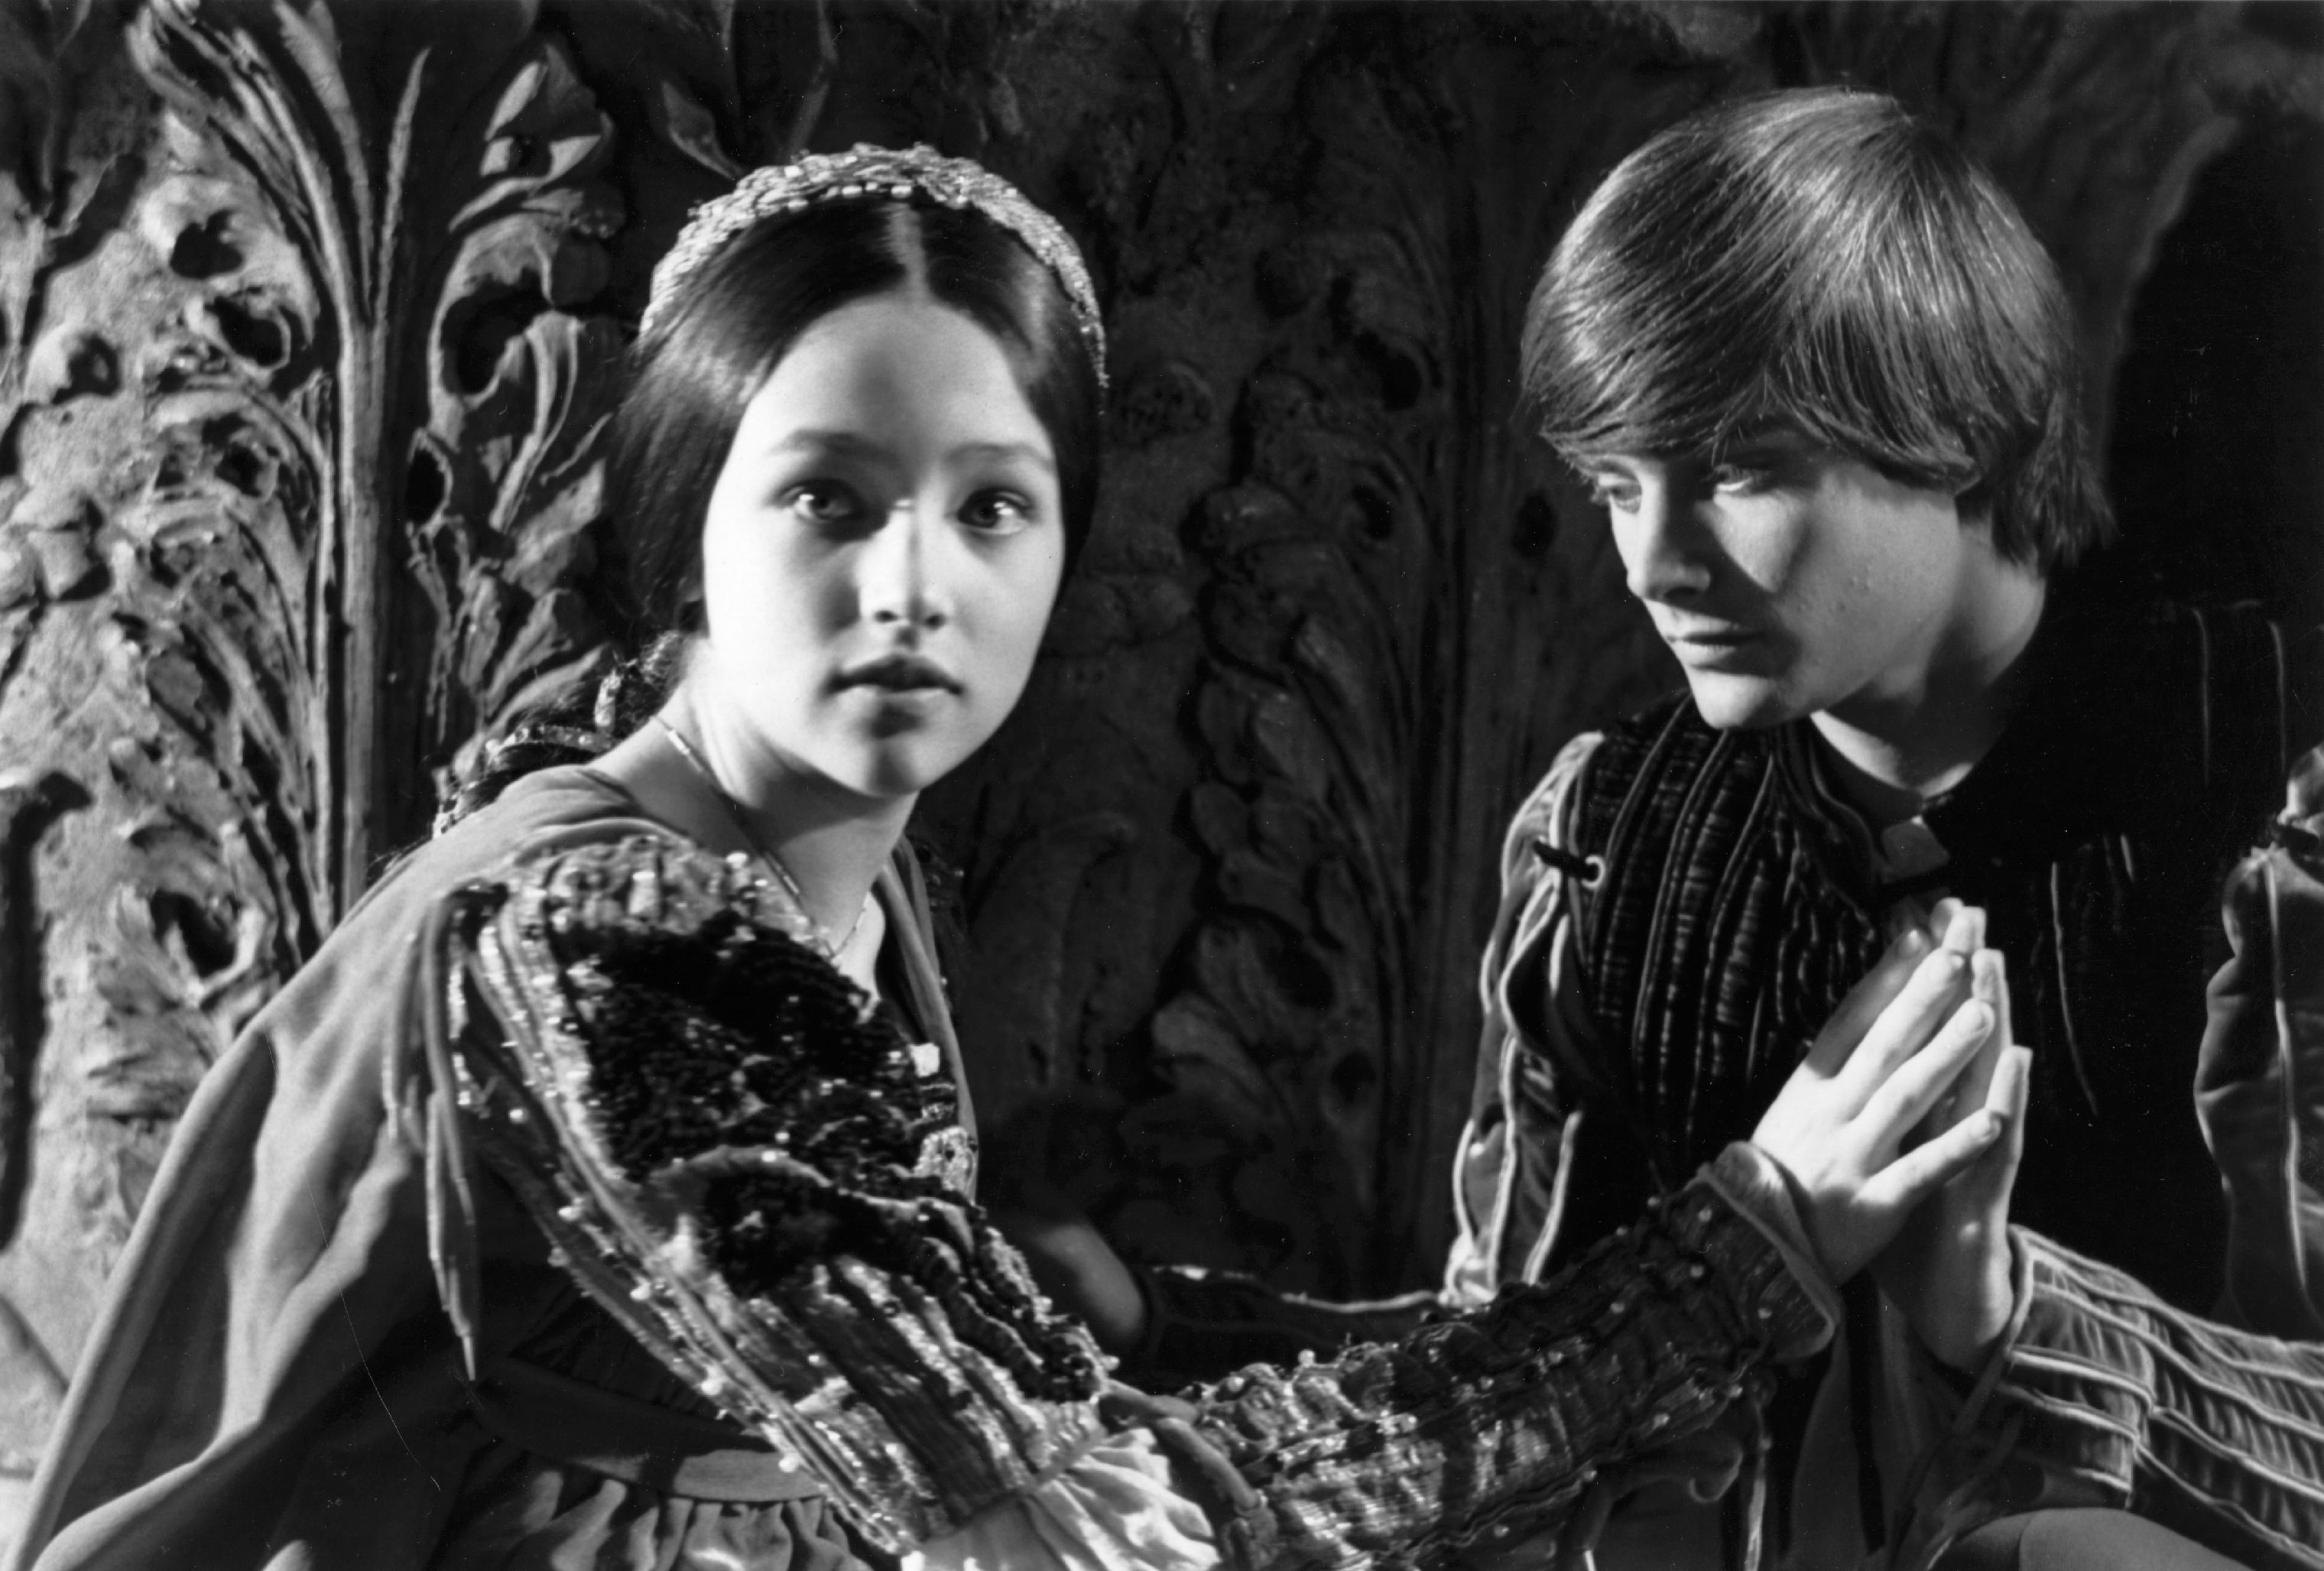 romeo and juliet a historical drama of love and fate Romeo and juliet historical context  and look upon myself and curse my fate,  romeo and juliet is not a simple love story, even if read as a piece of .